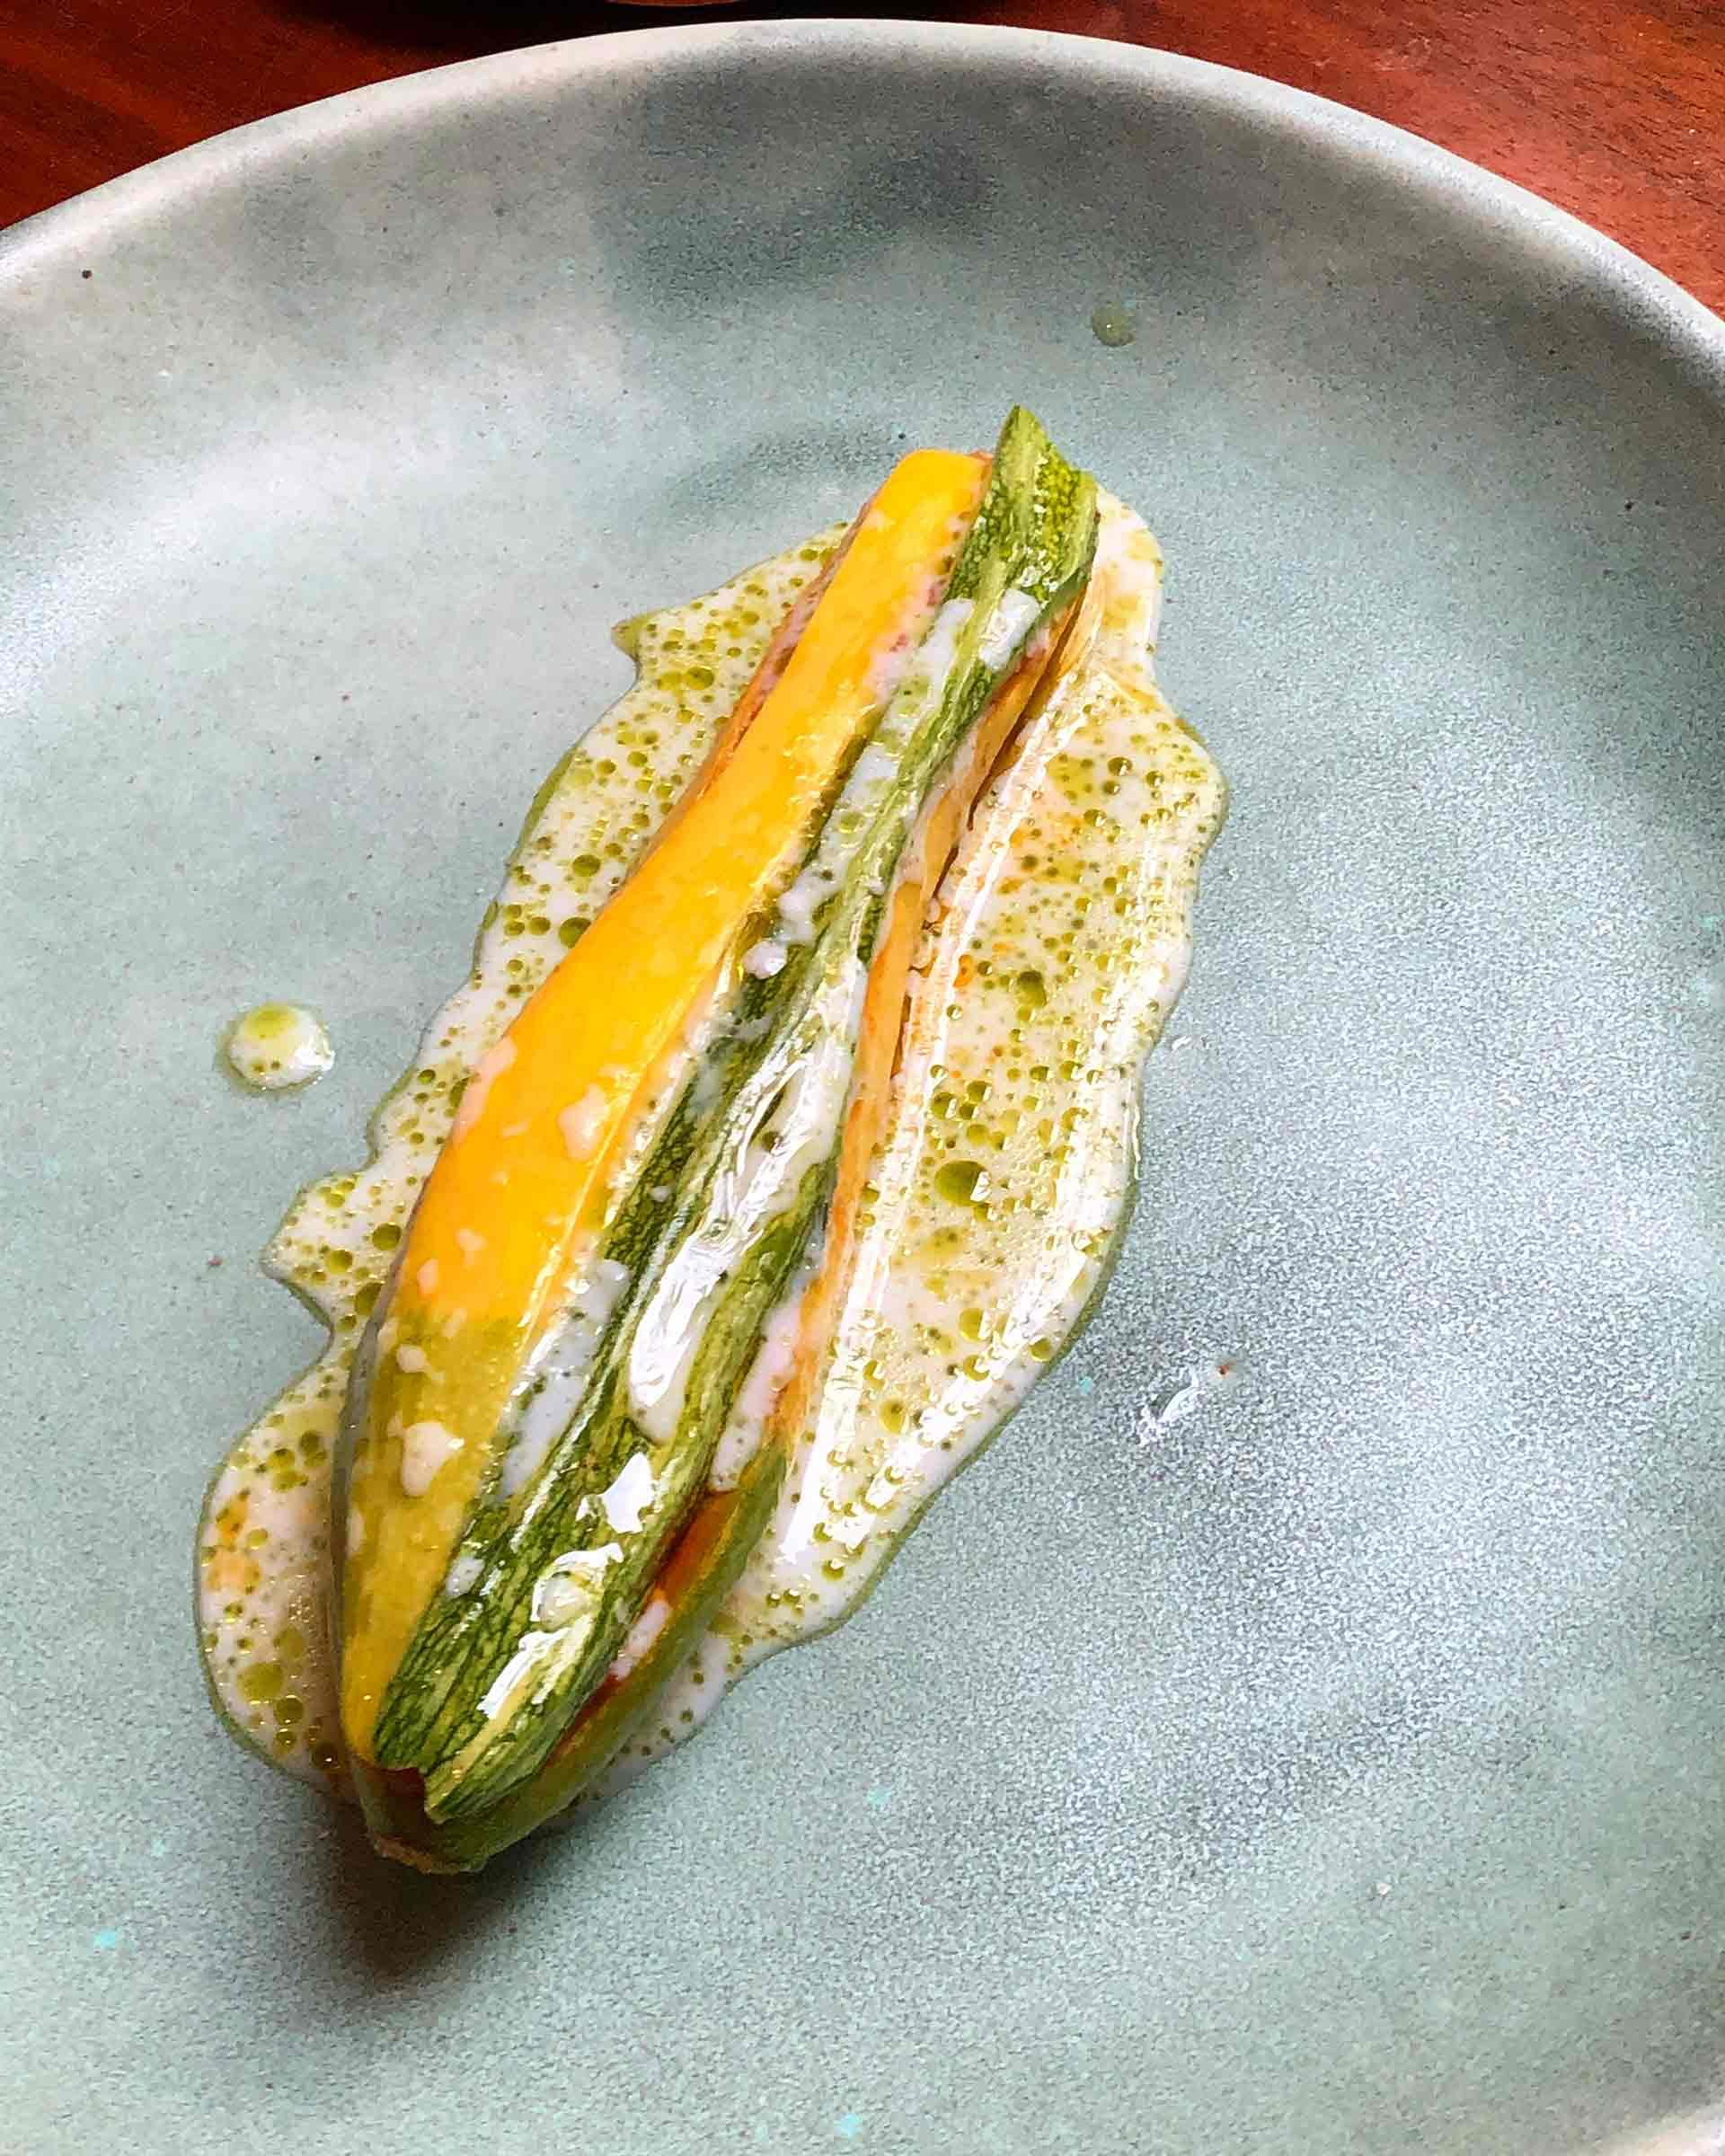 Summer Squash with Nduja and Salted Rhubarb